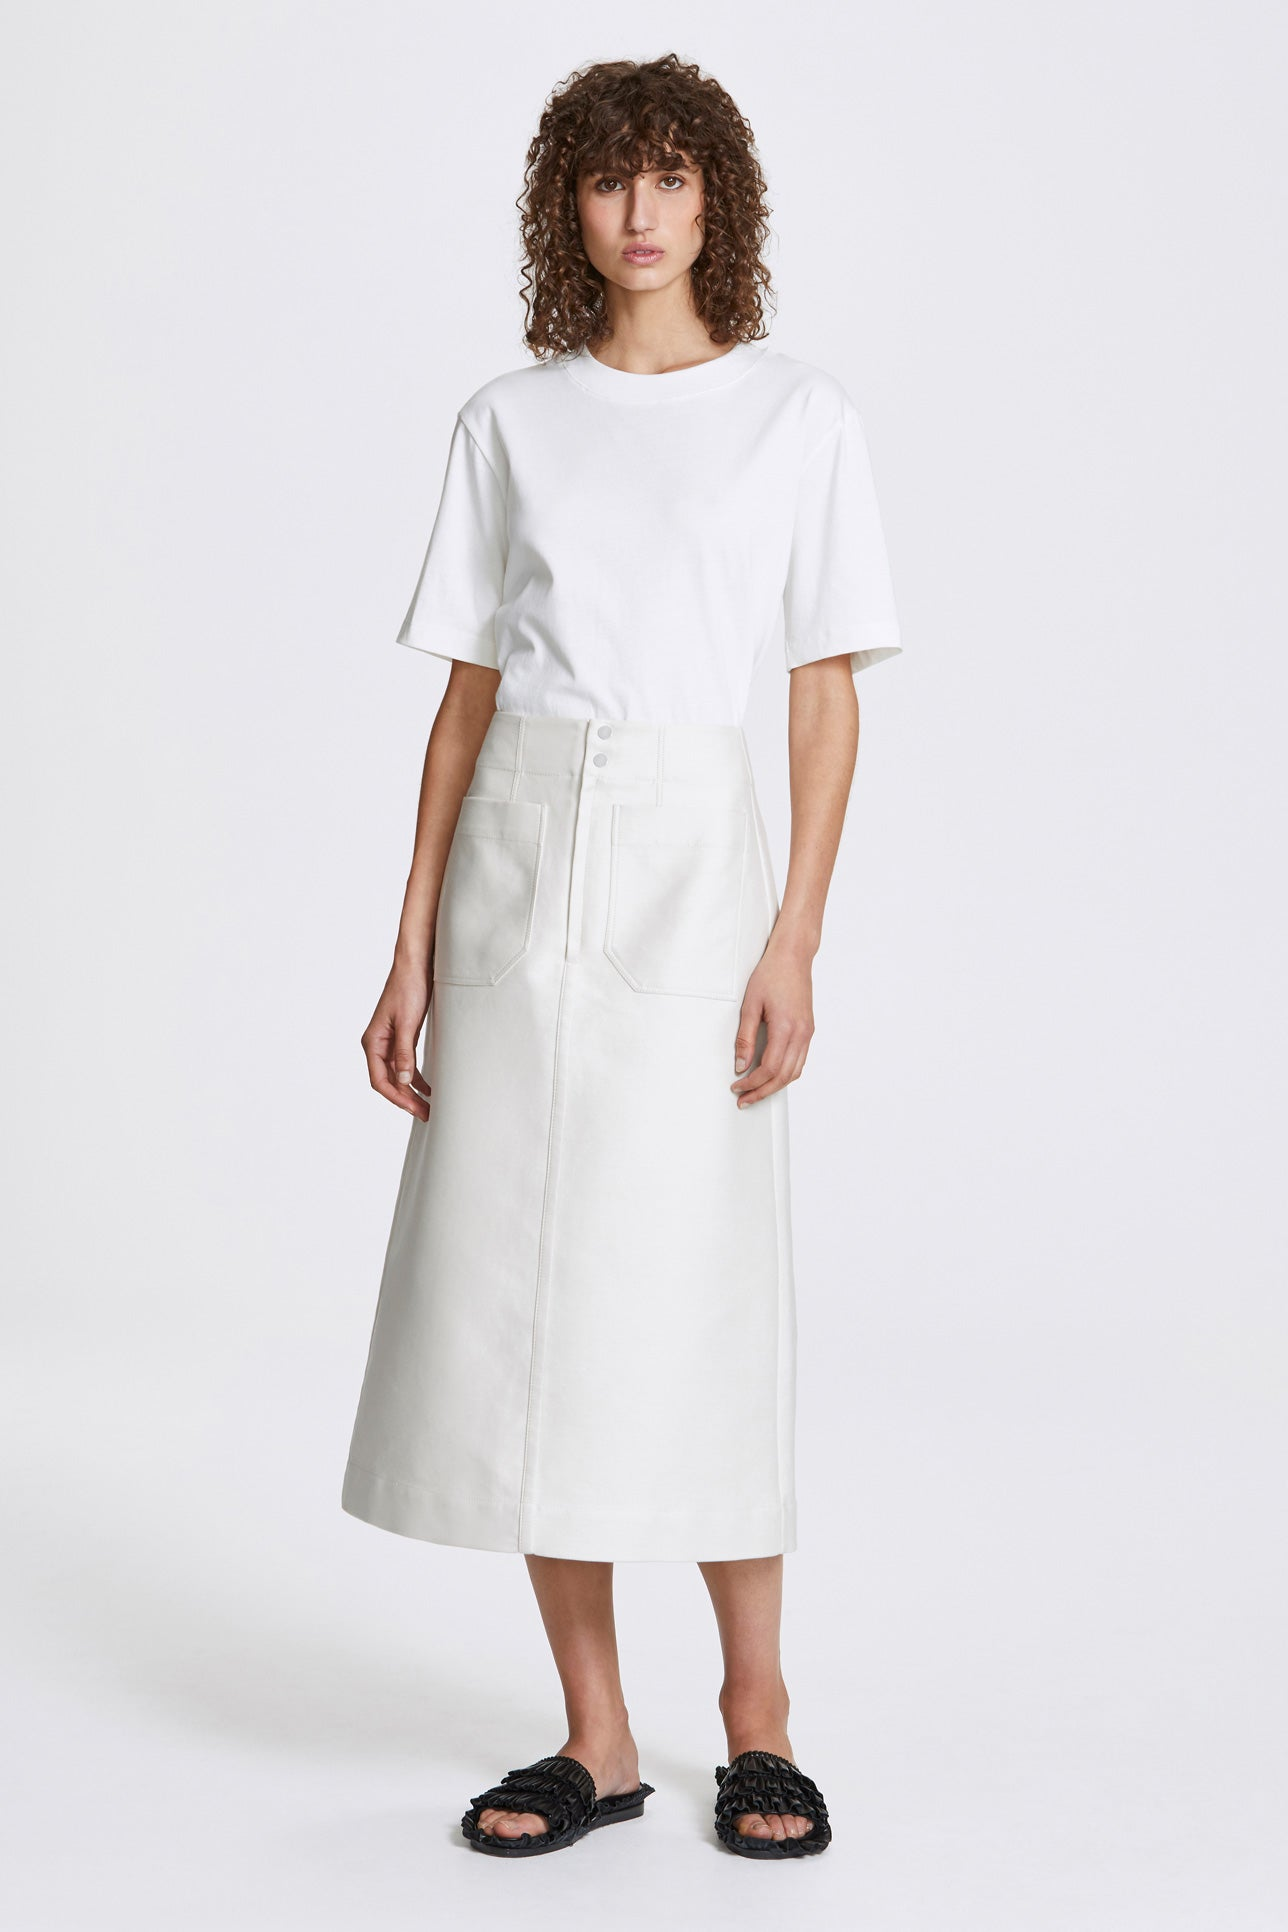 Inverse a-line long skirt - Double-faced cotton twill - Cream - Resortwear skirt - Her Line